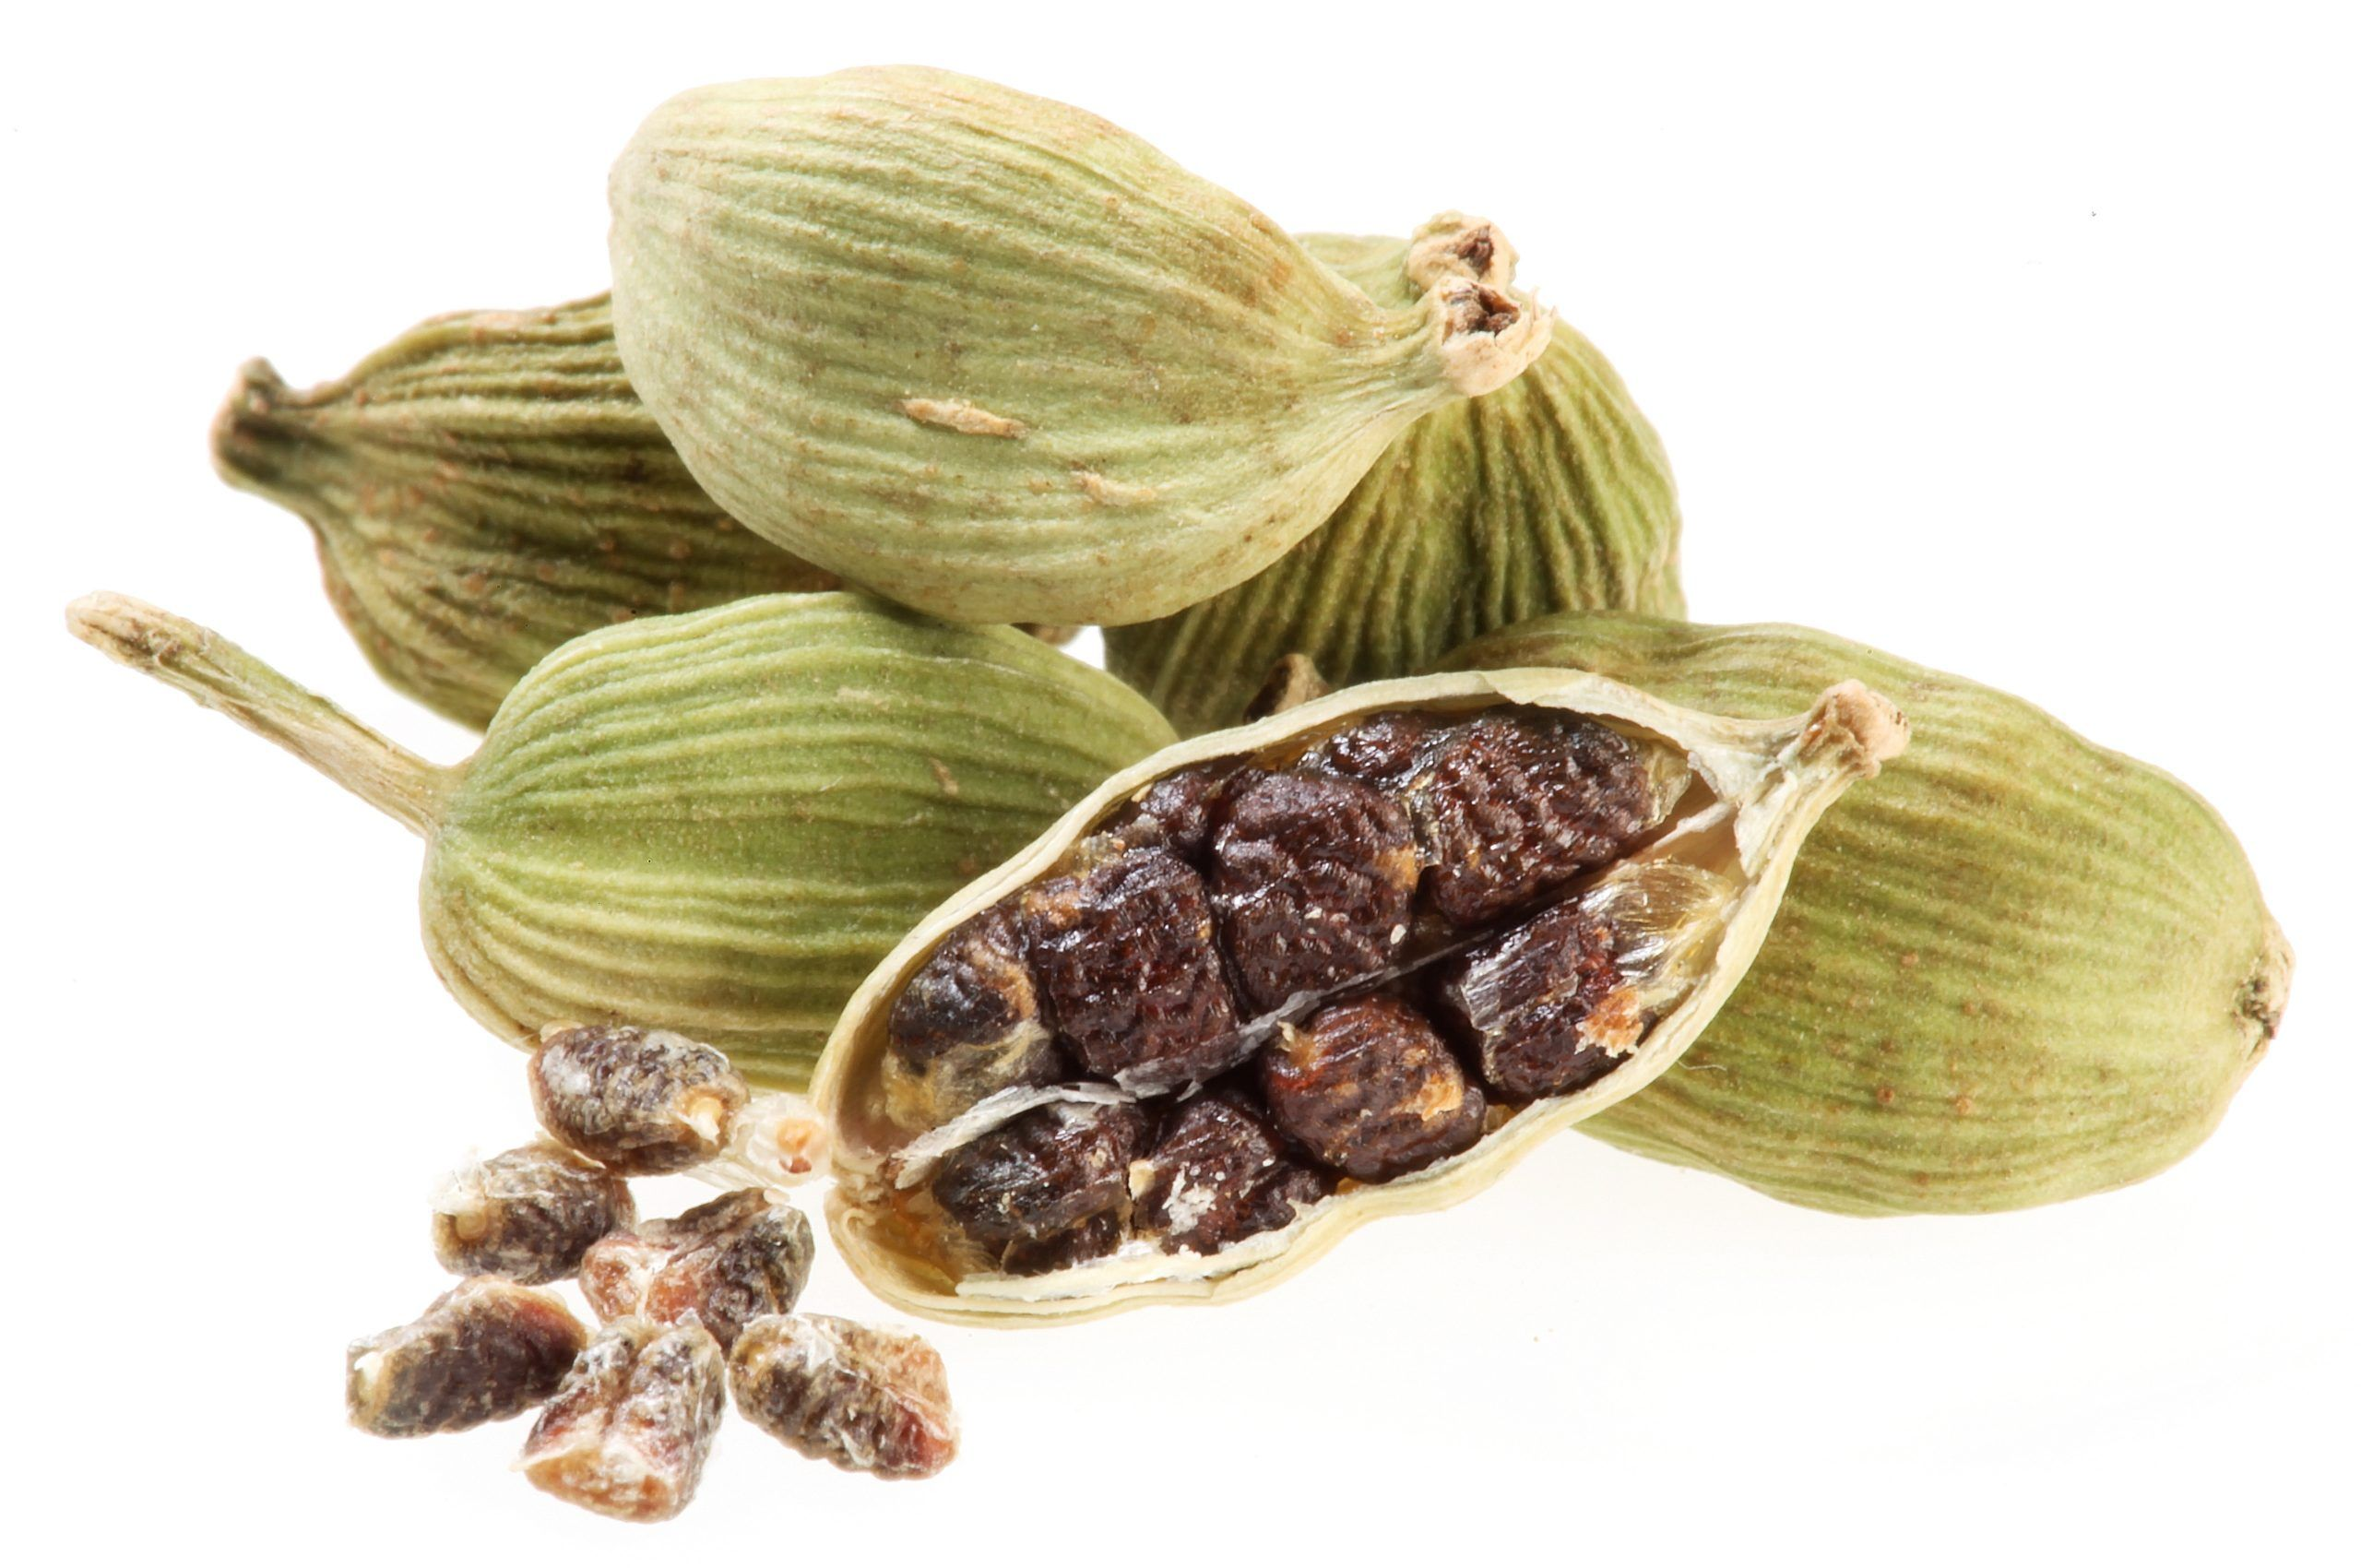 Cardamomo: proprietà e benefici